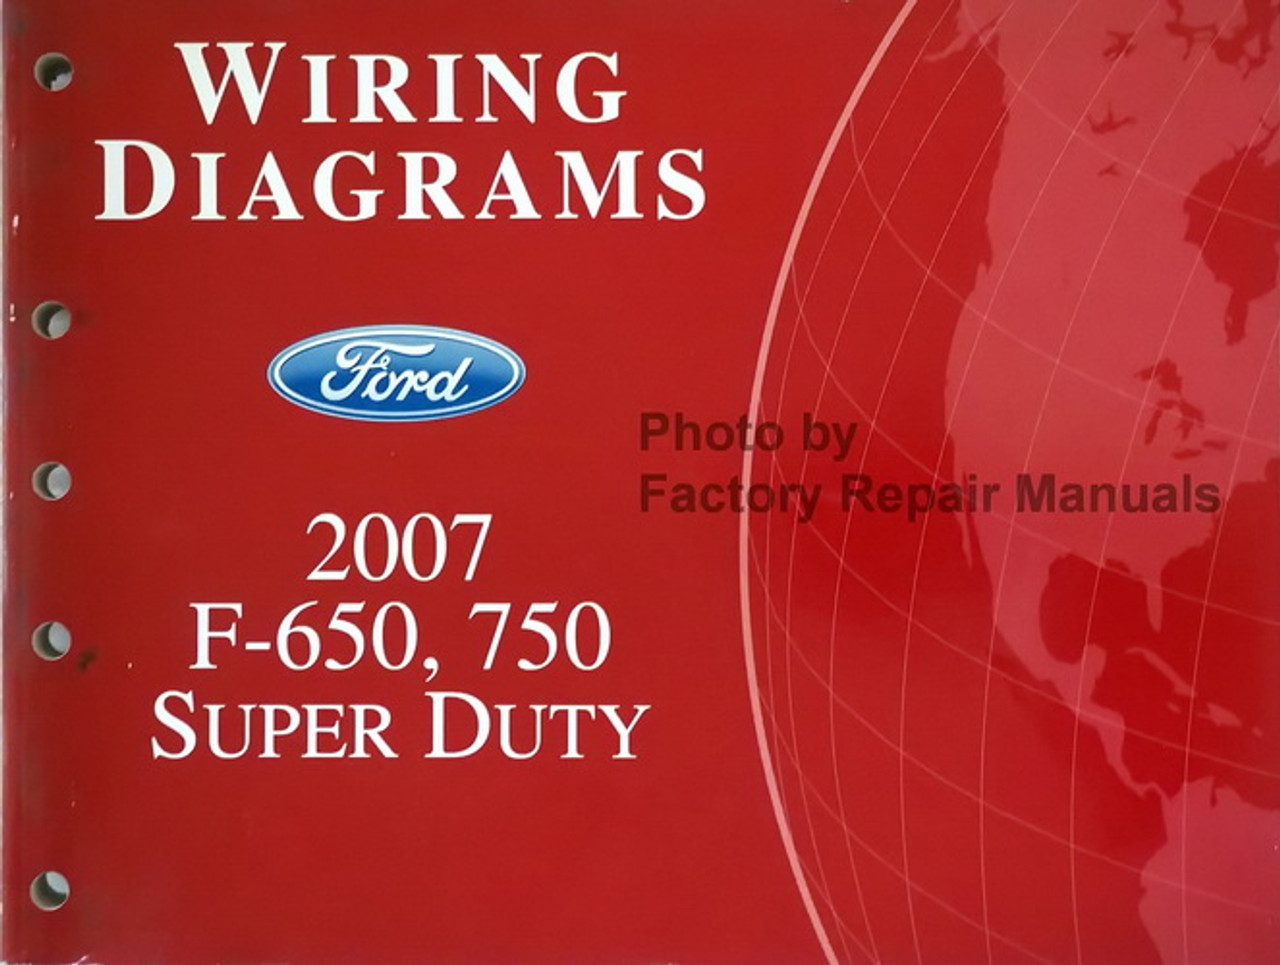 2006 Ford 750 Wire Diagrams 1970 Pontiac Firebird Wire Diagram Wiring Schematic Wiring Diagram Schematics